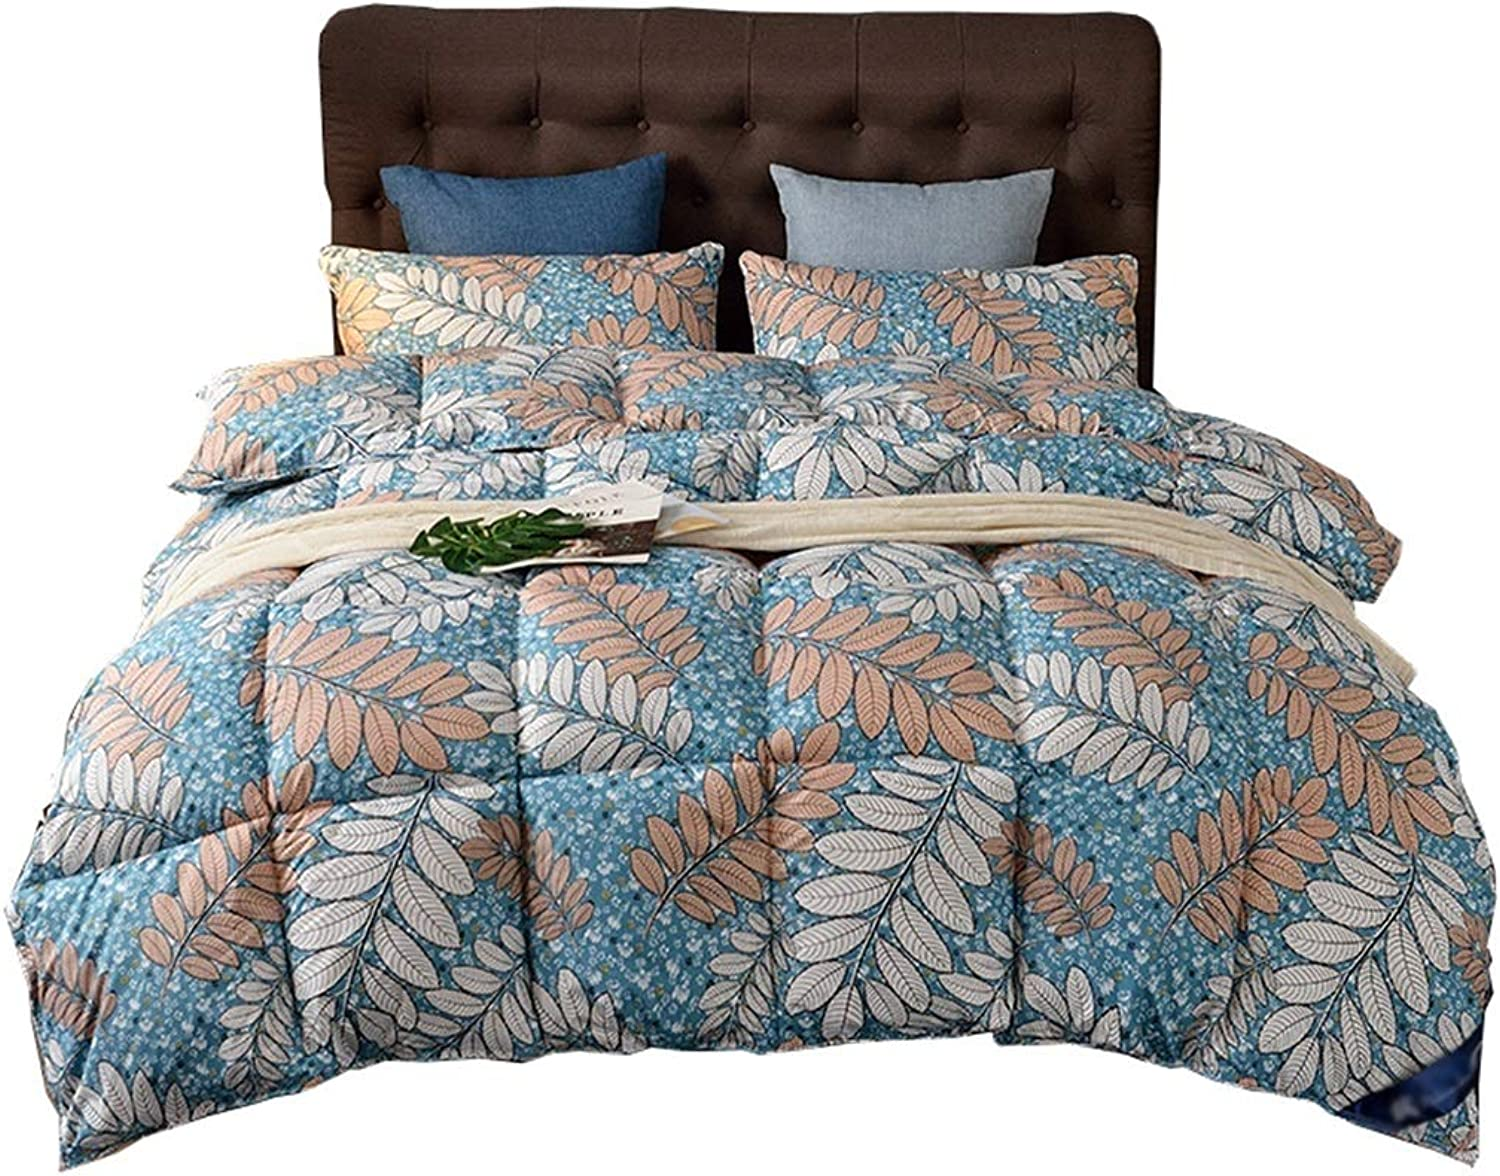 Warm Quilt Retro Duvet Spring Autumn Winter Thickening Warm Single Double Bed Supplies - Comforter Family Student Dormitory - Pure Cotton Fabric Fashion Printing Quilt Antiallergic Quilt